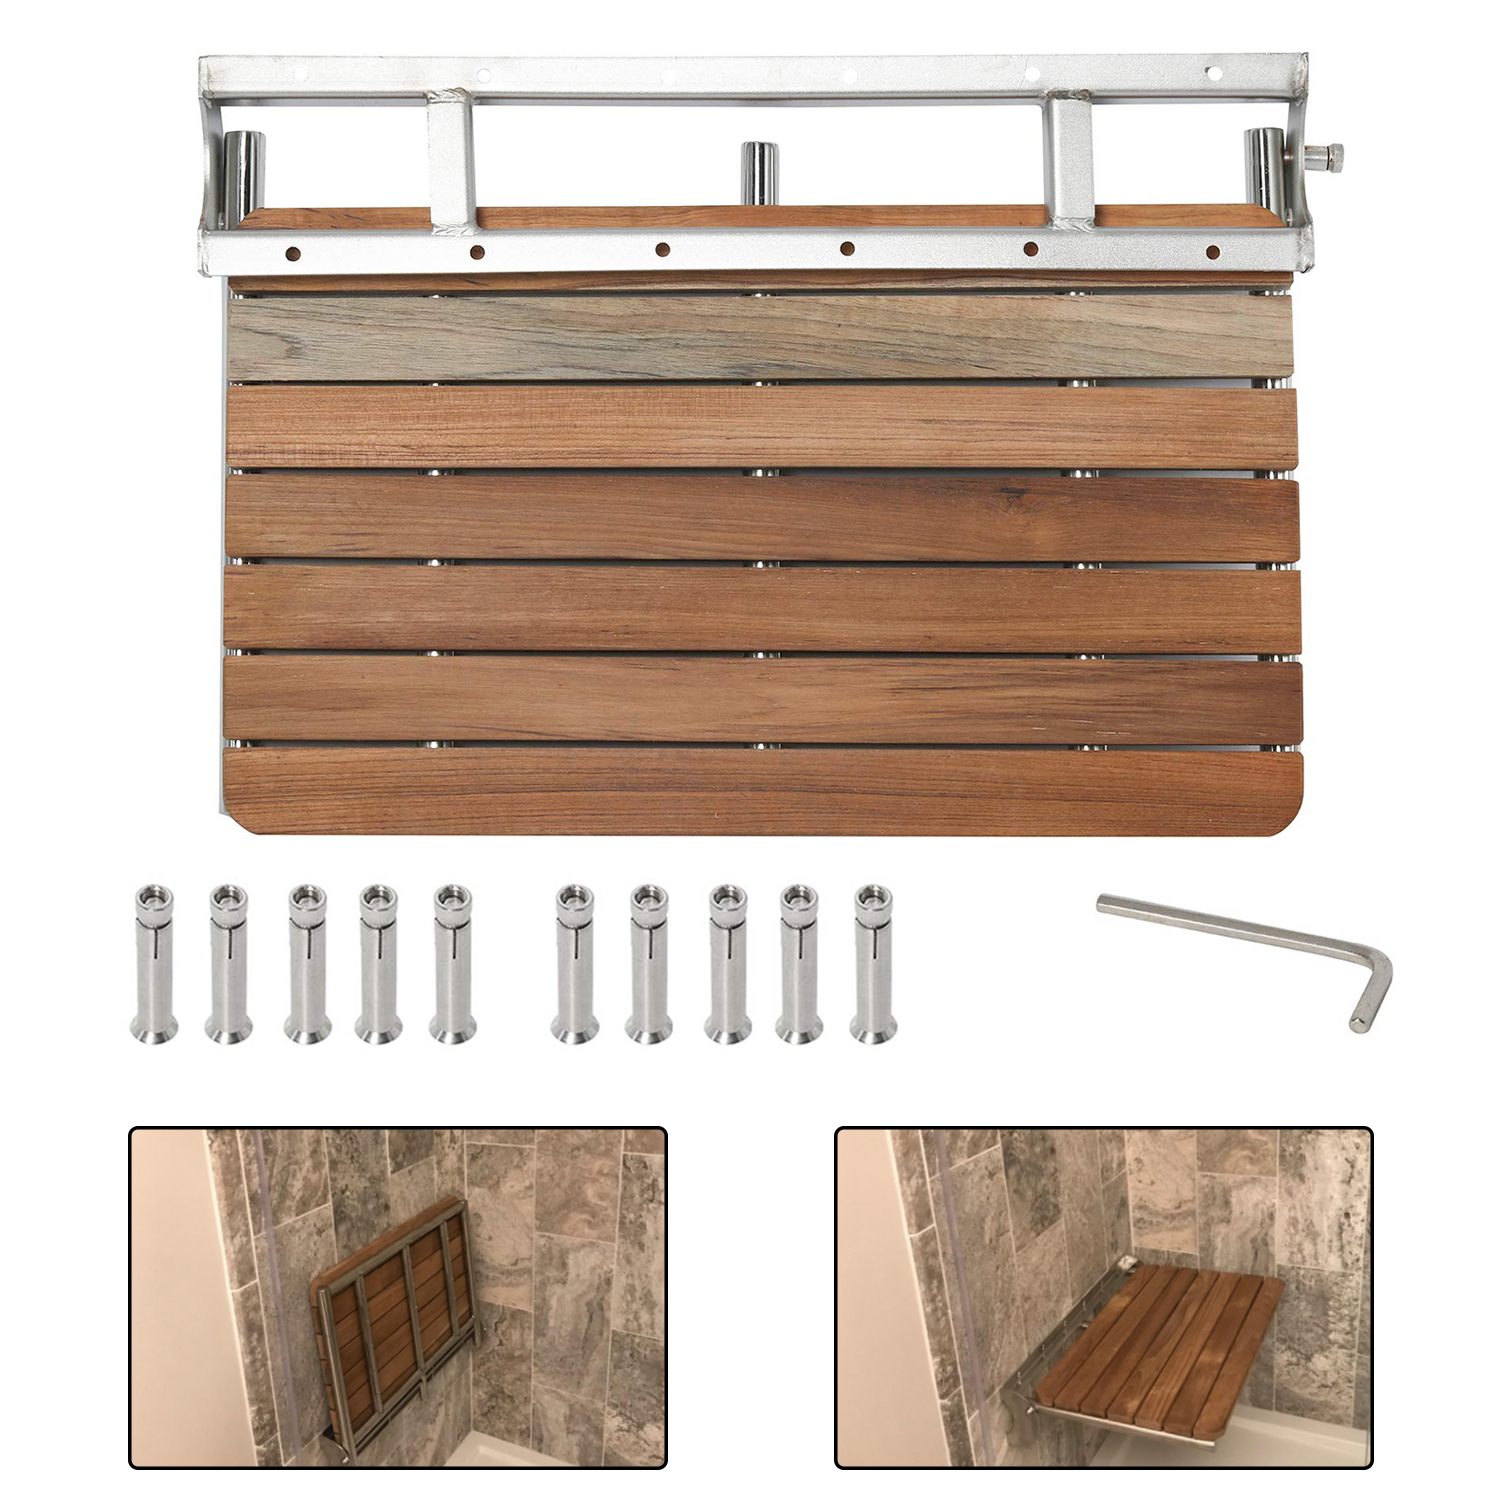 Details About New 26 6 X 18 5 Wall Mounted Teak Folding Shower Seat Bath Chair For Bathroom